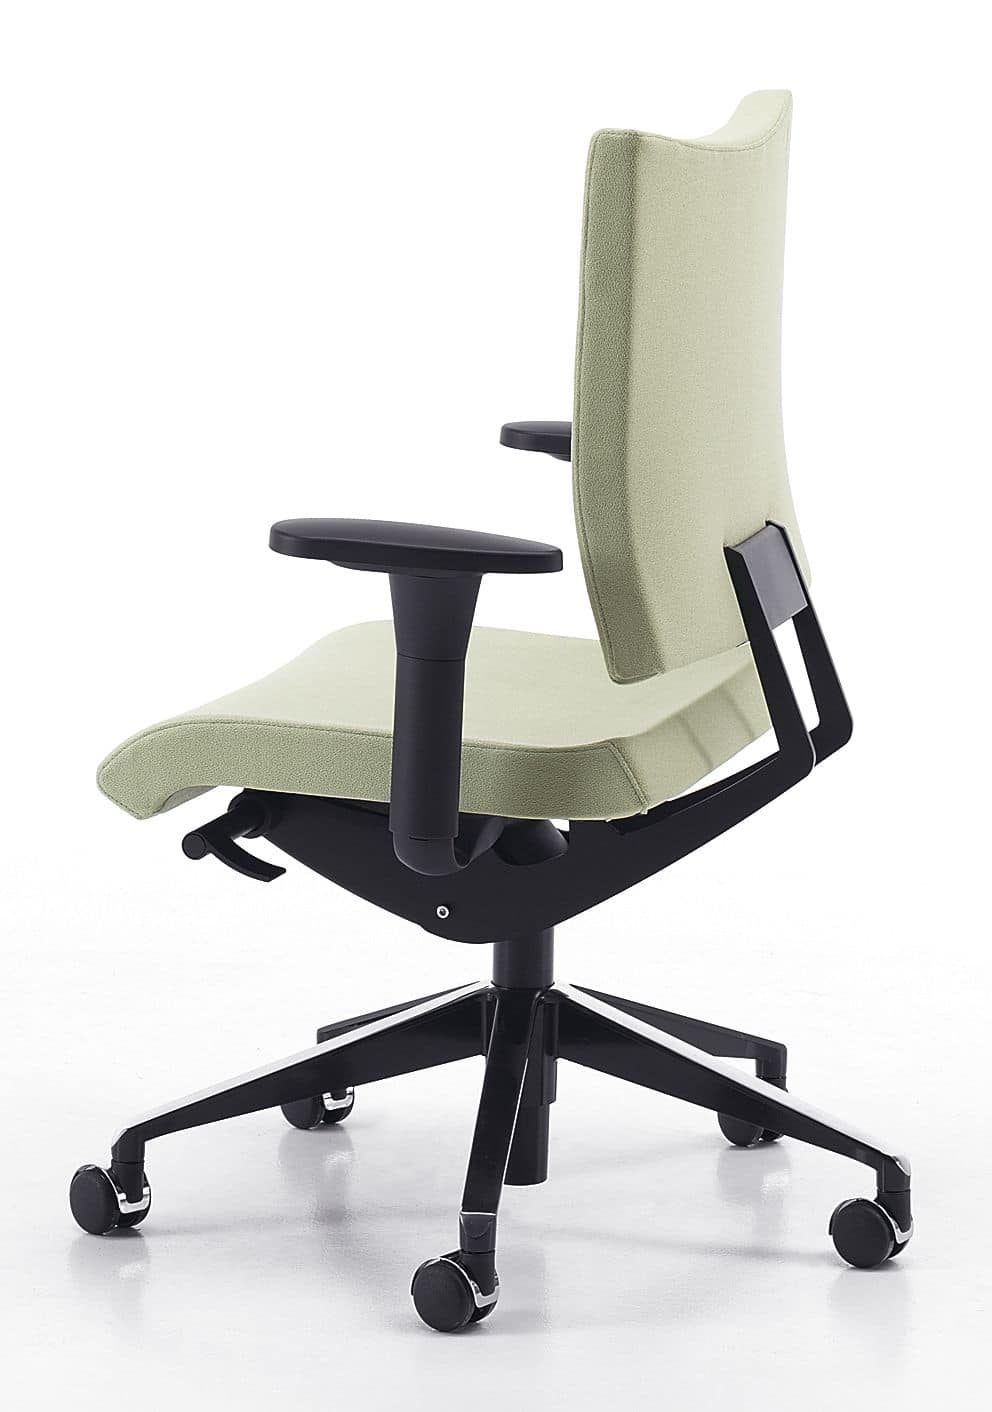 AVIAMID 3406, Task chair with armrests, sliding seat